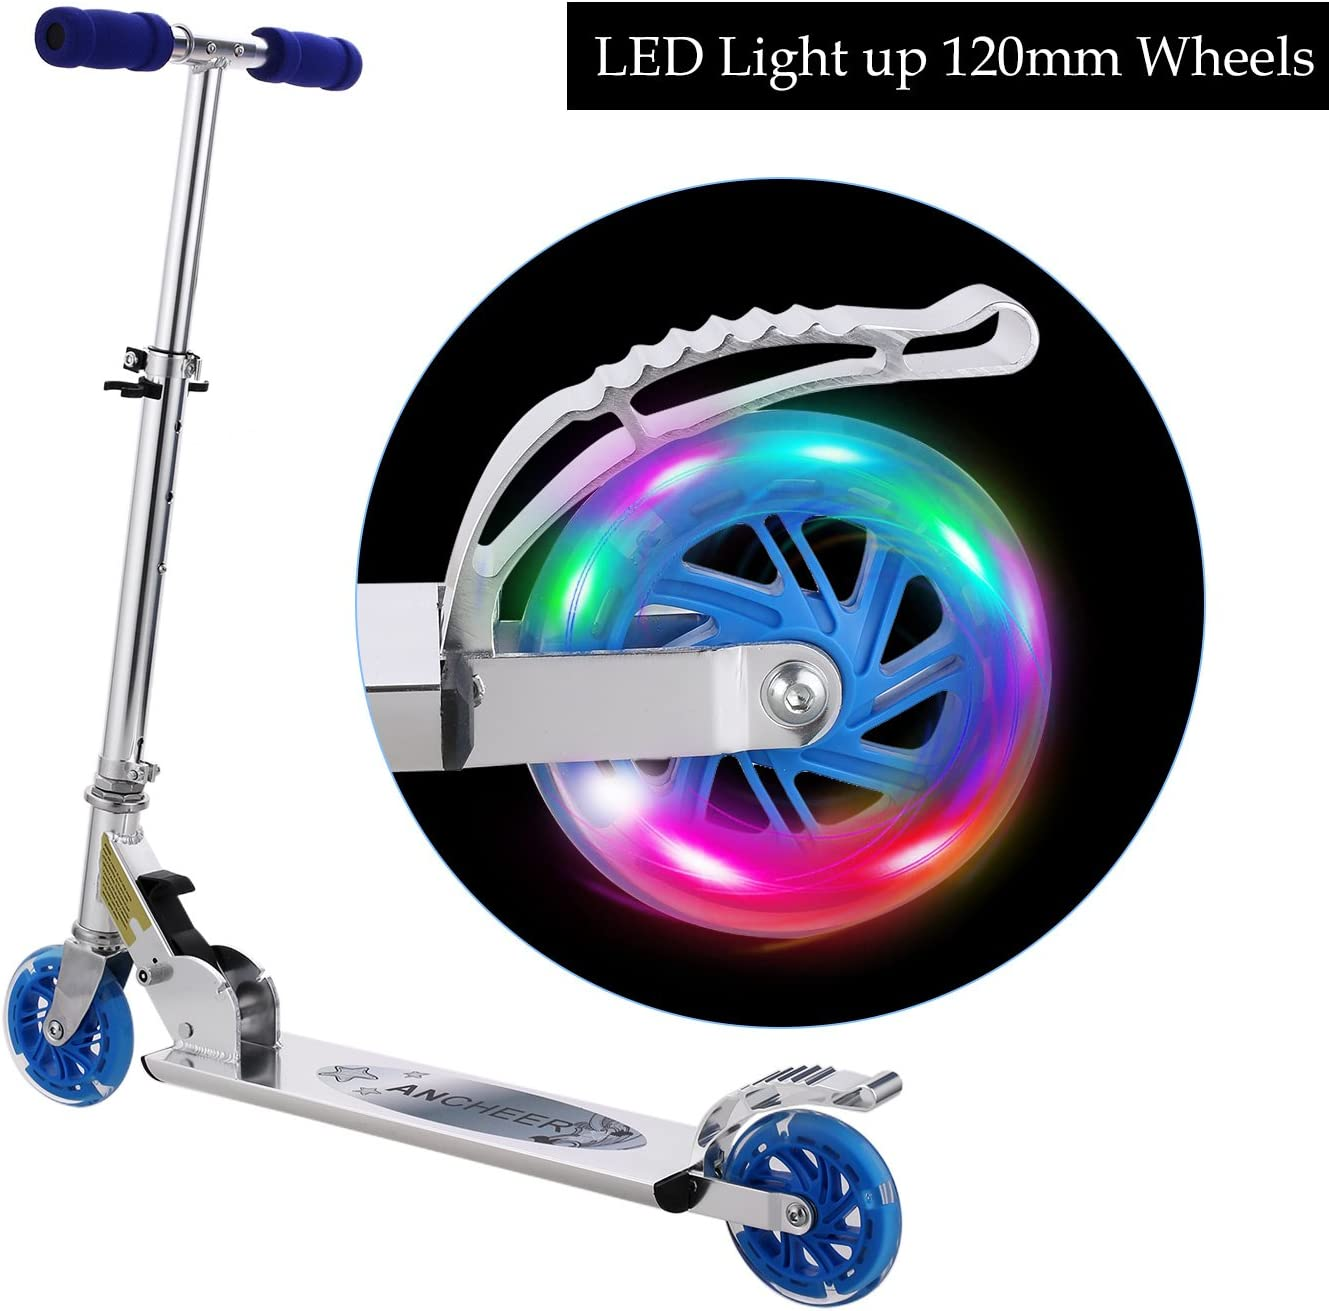 WeSkate Scooter for Kids with LED Light Up Wheels, Adjustable Height Setting Folding Kick Scooter for Boys Girls 5lb Lightweight, 110lb Capacity, Rear Break 2-Wheels Scooter